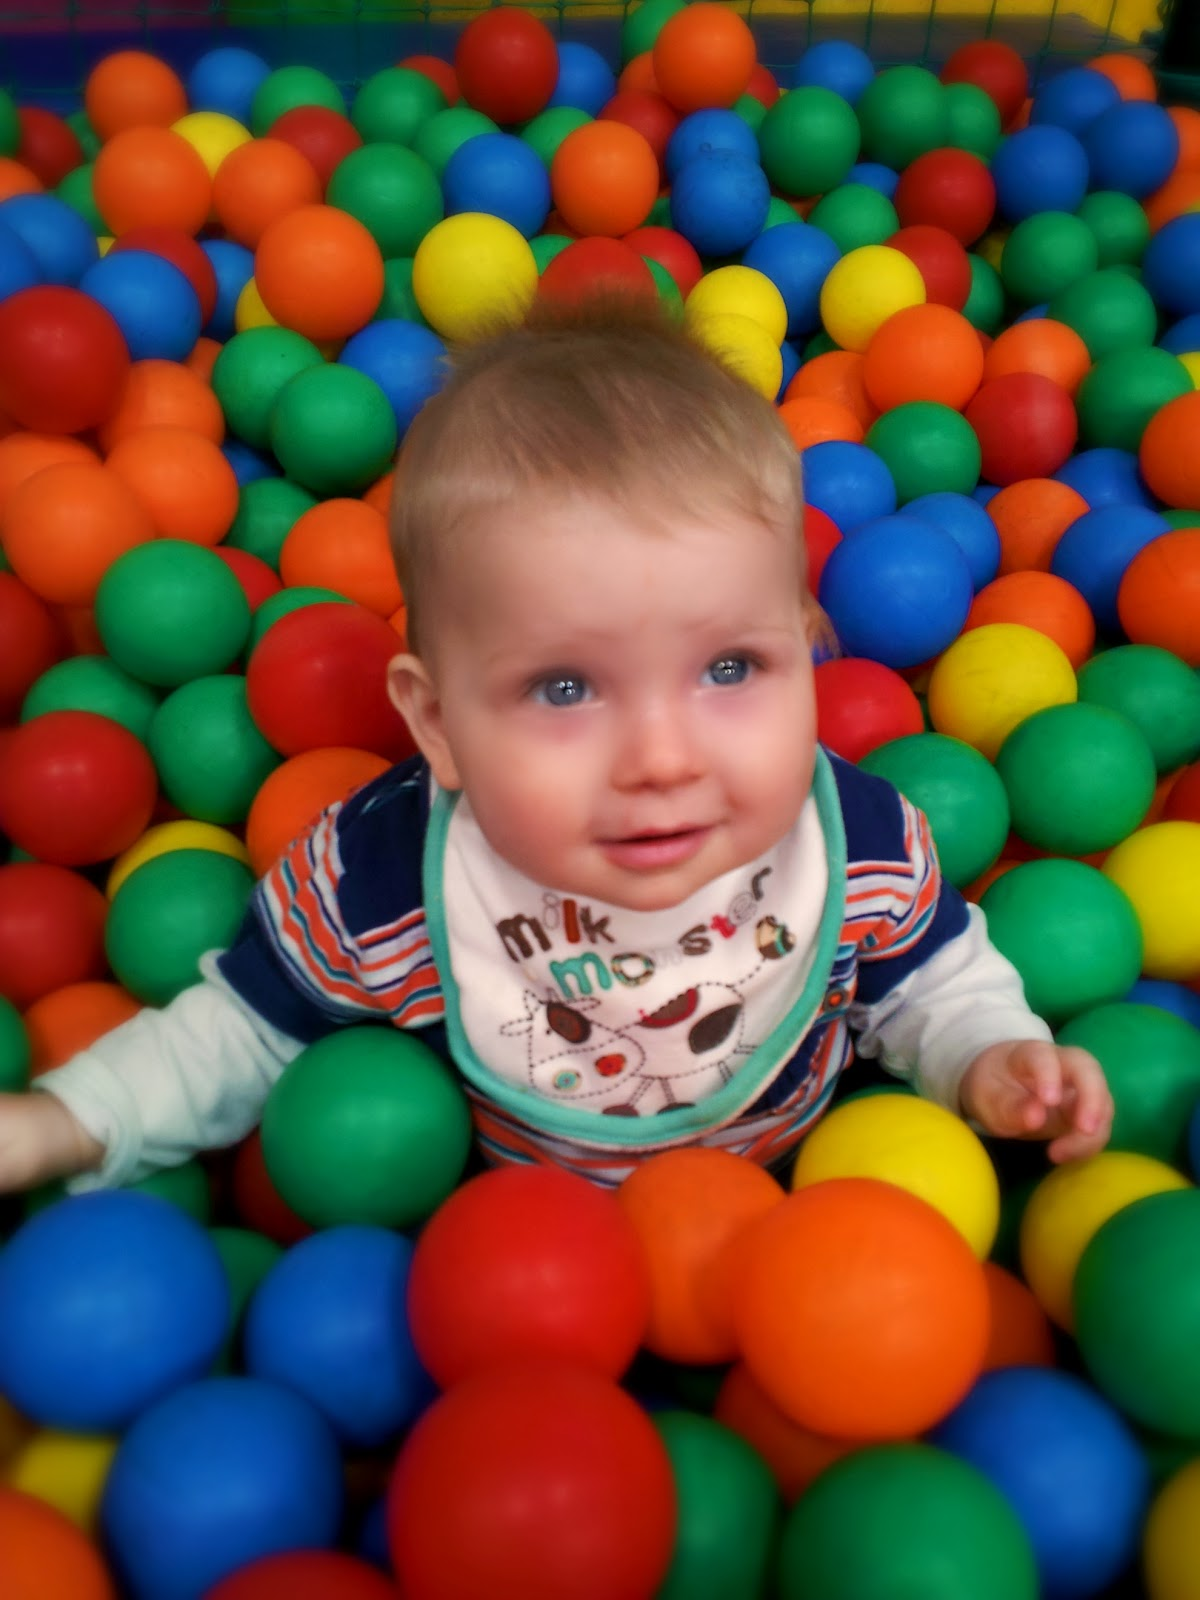 Squishy Play Ball : The Adventure of Parenthood: soft play